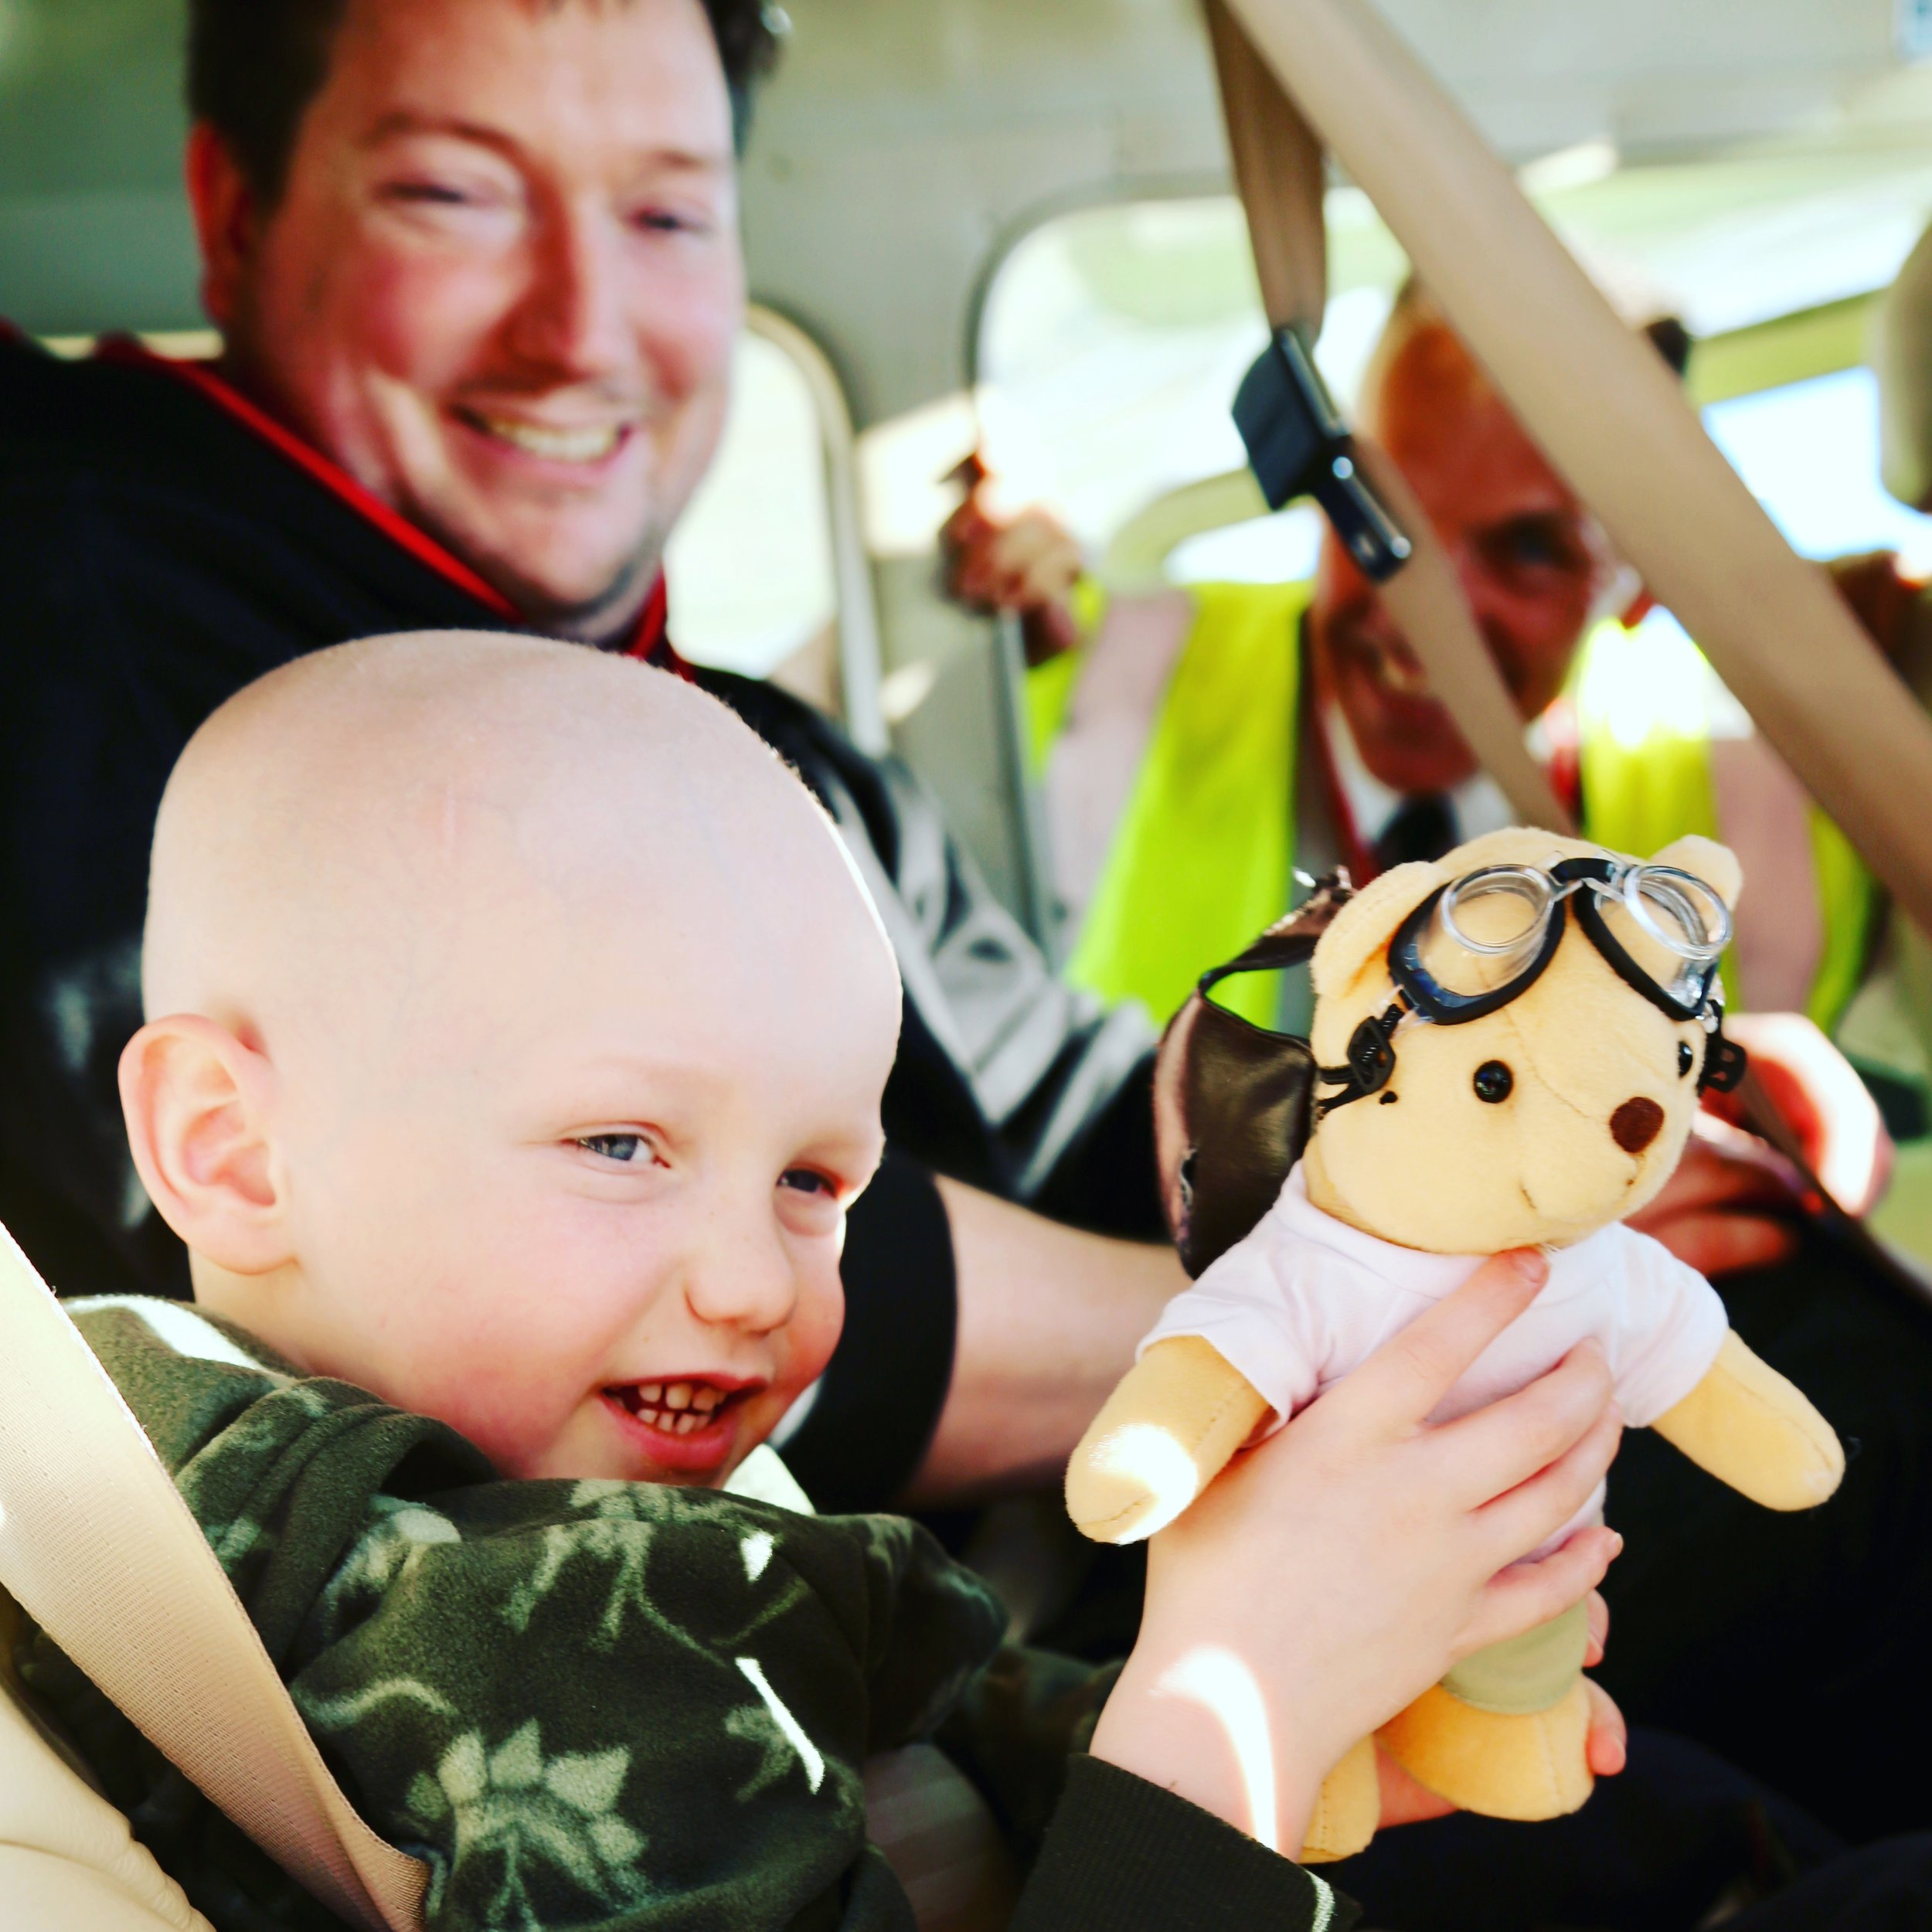 £25 a month - A regular gift of £25 will allow ten people every year to take a flight across the UK, either for a vital medical appointment, an important family occasion, or a once-in-a-lifetime day out